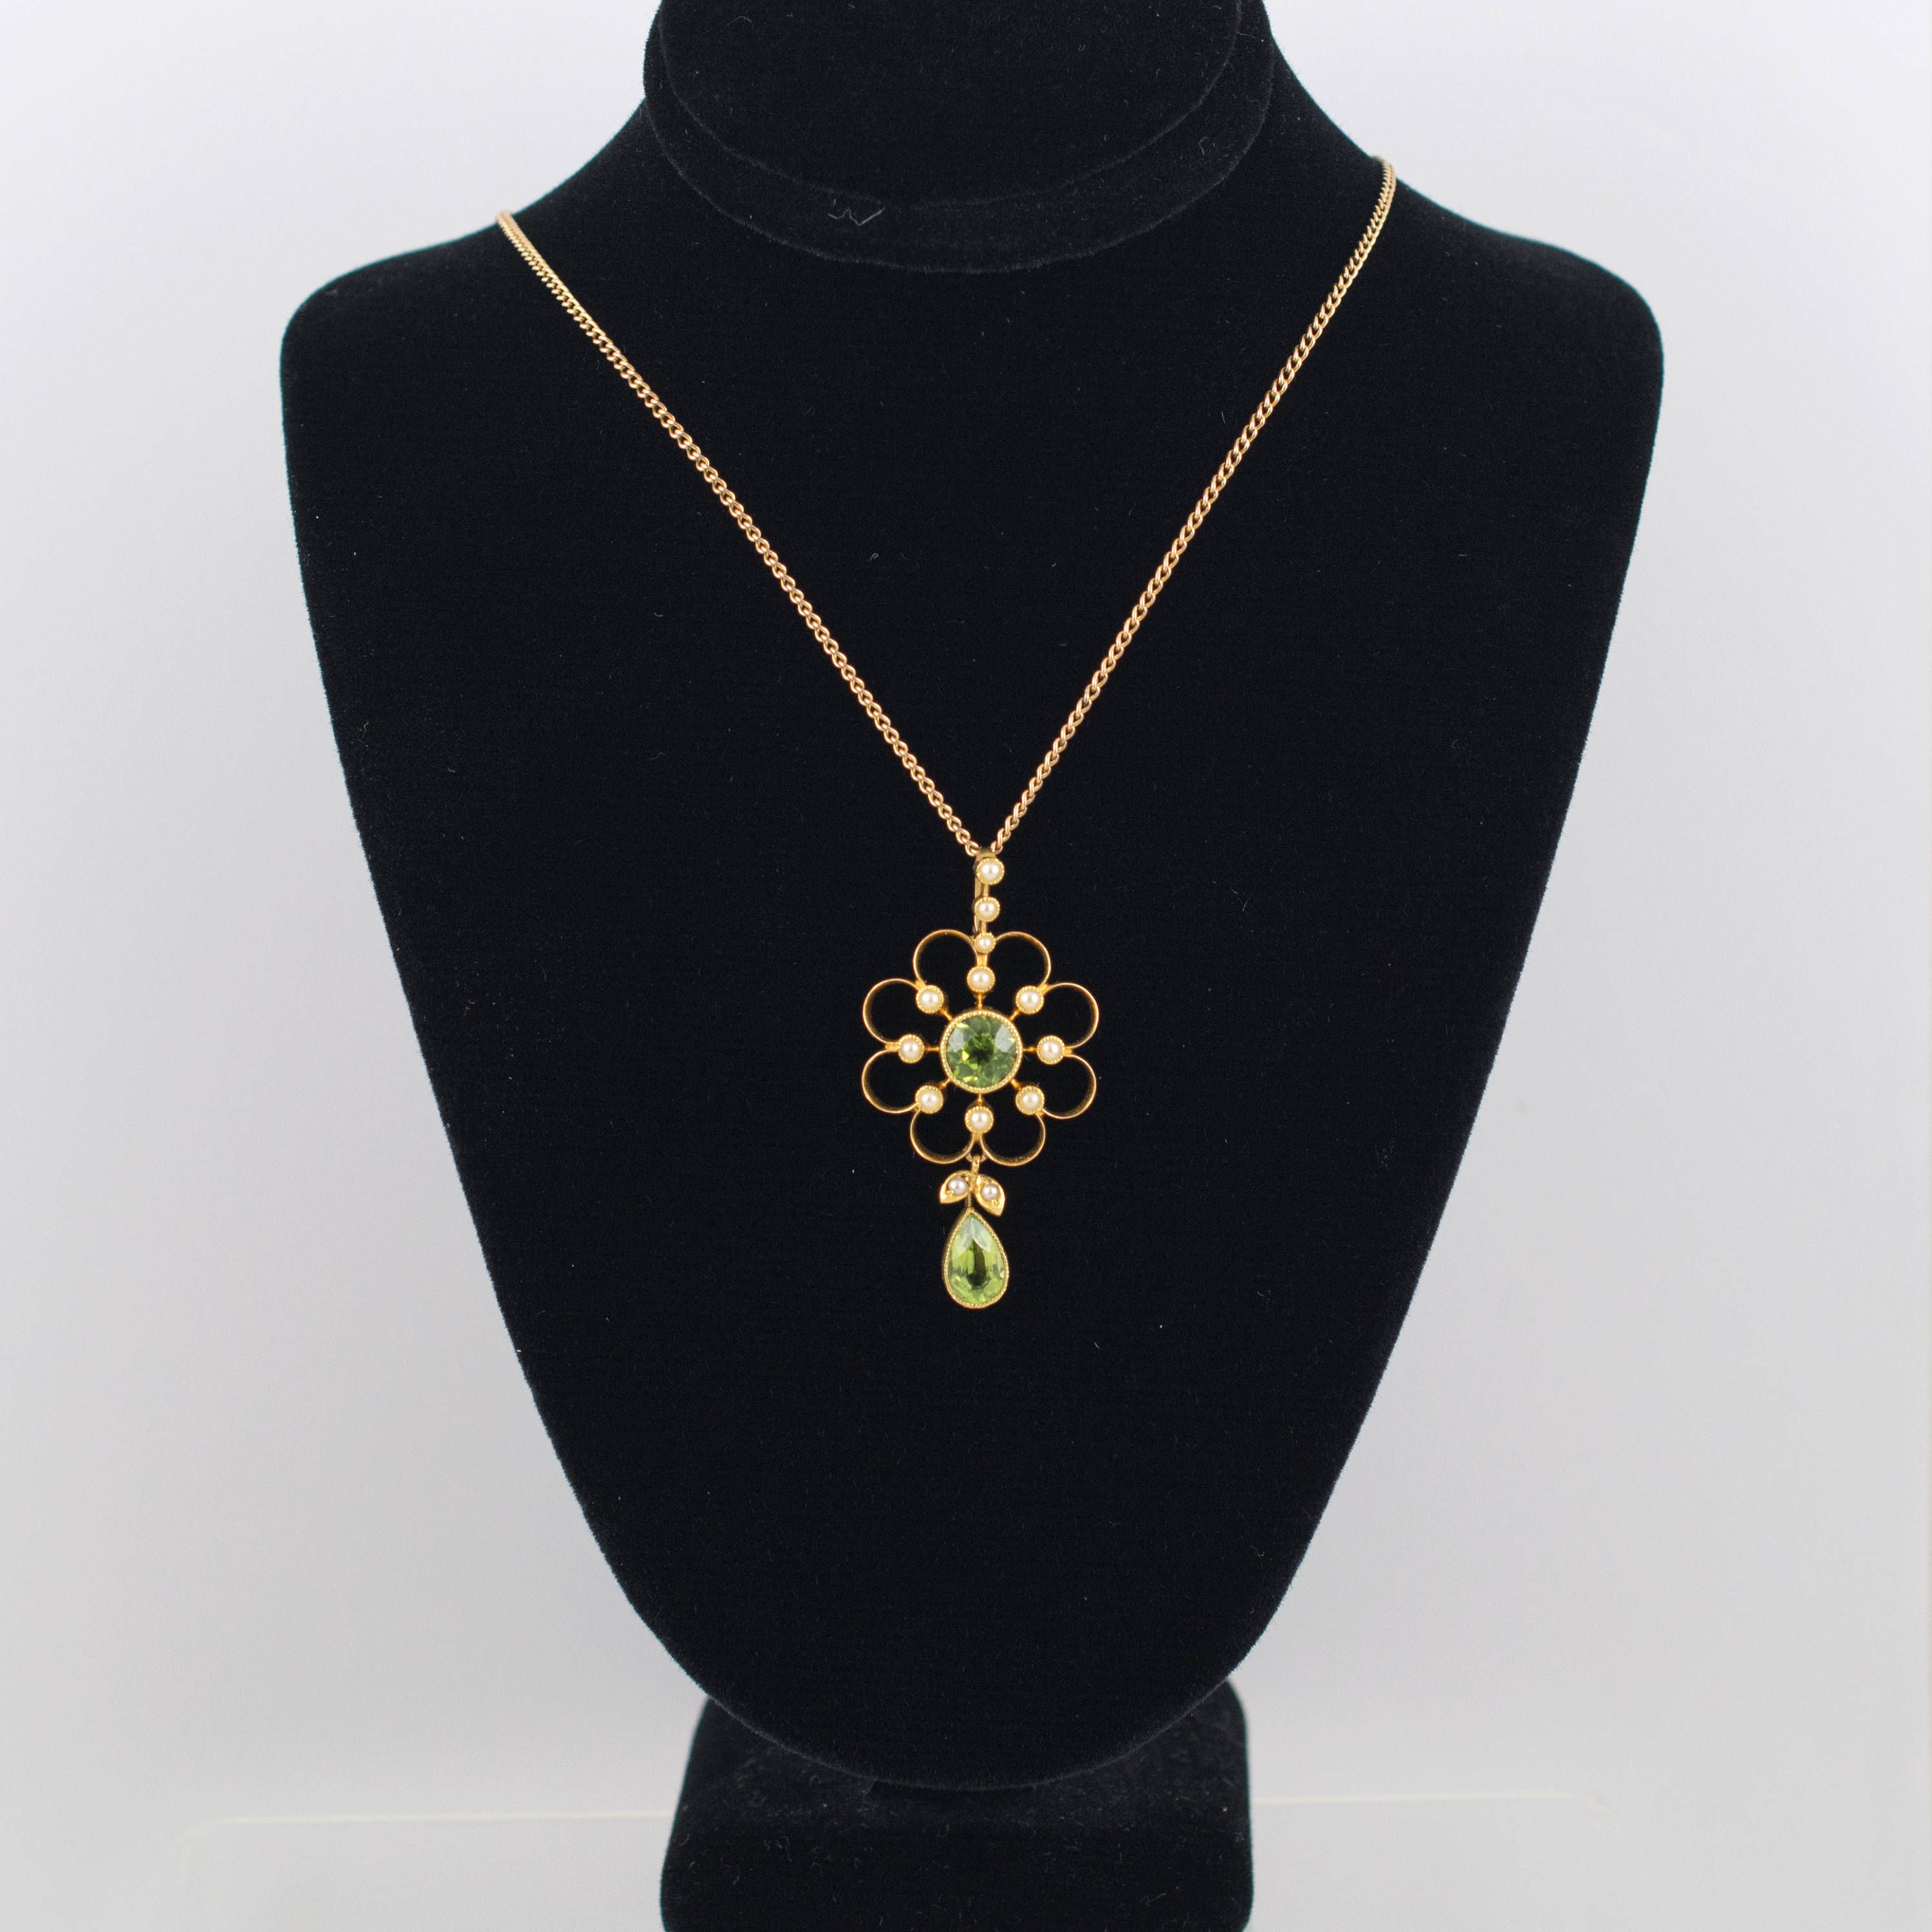 15ct gold pendant peridot pearl antique peridot lavalier pendant 15ct gold pendant peridot pearl antique peridot lavalier pendant vintage aloadofball Image collections